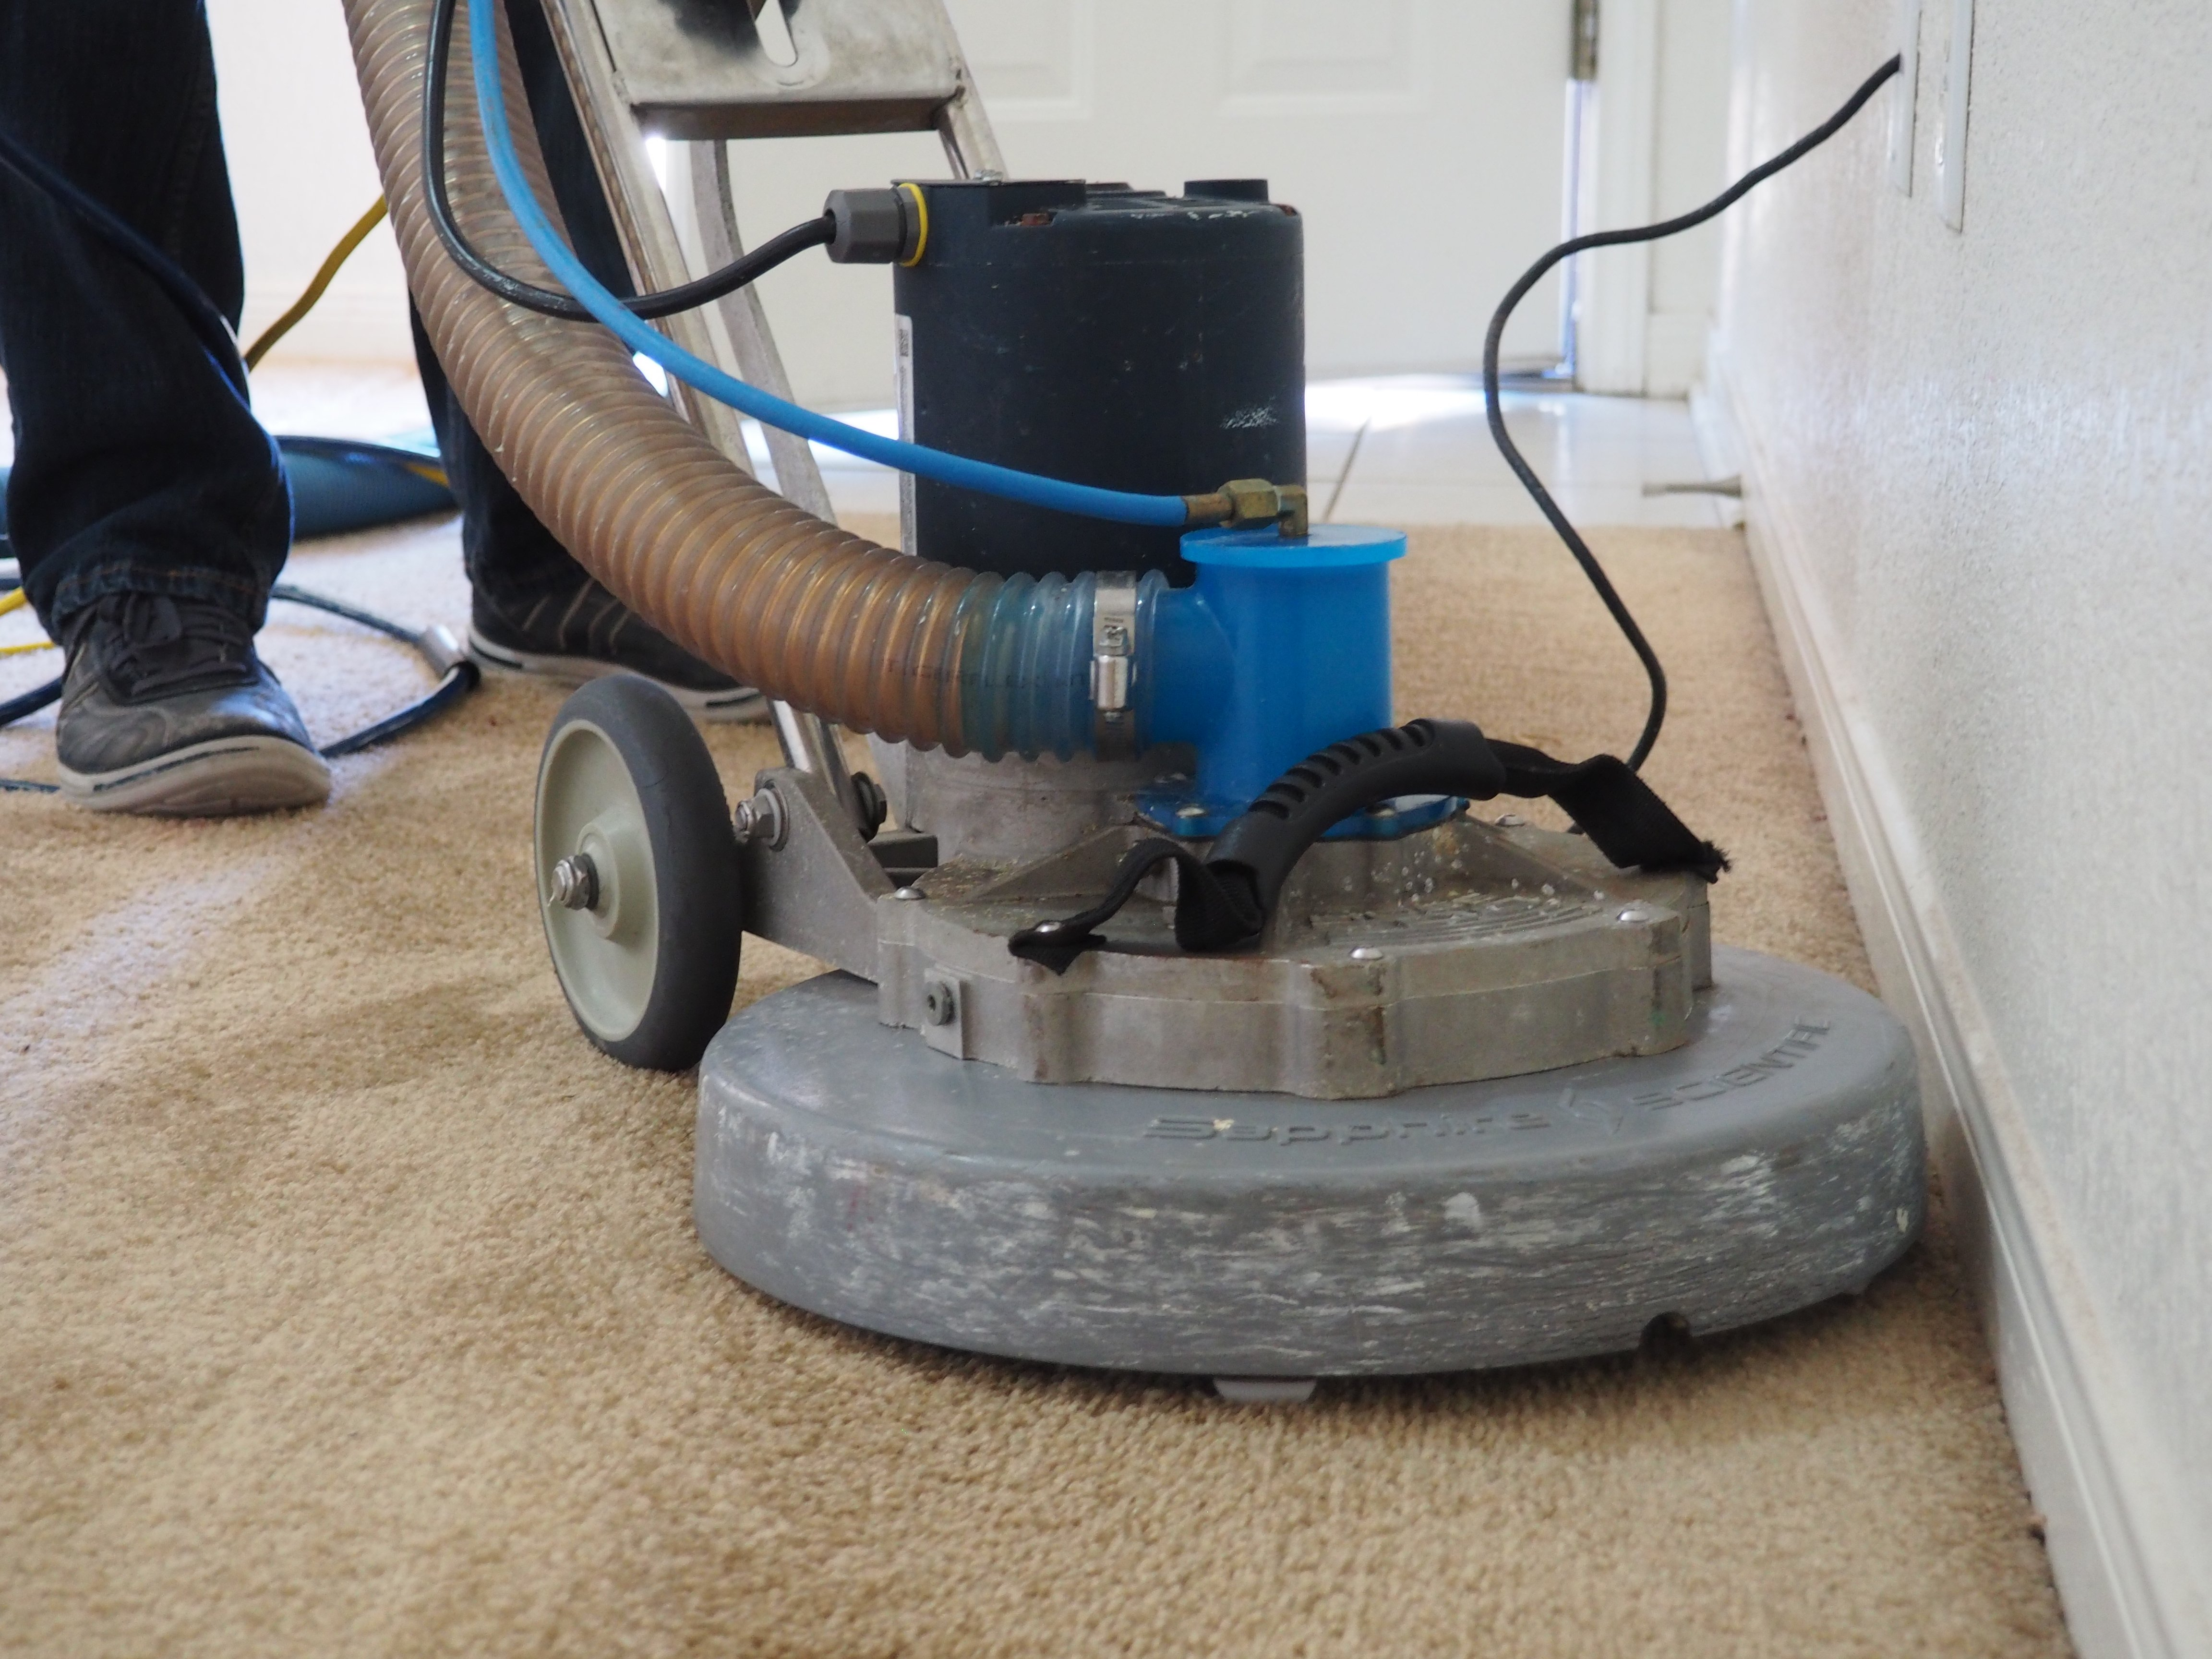 Ace Carpet Cleaning Gallery Image Killeen Texas Fort Hood Tools